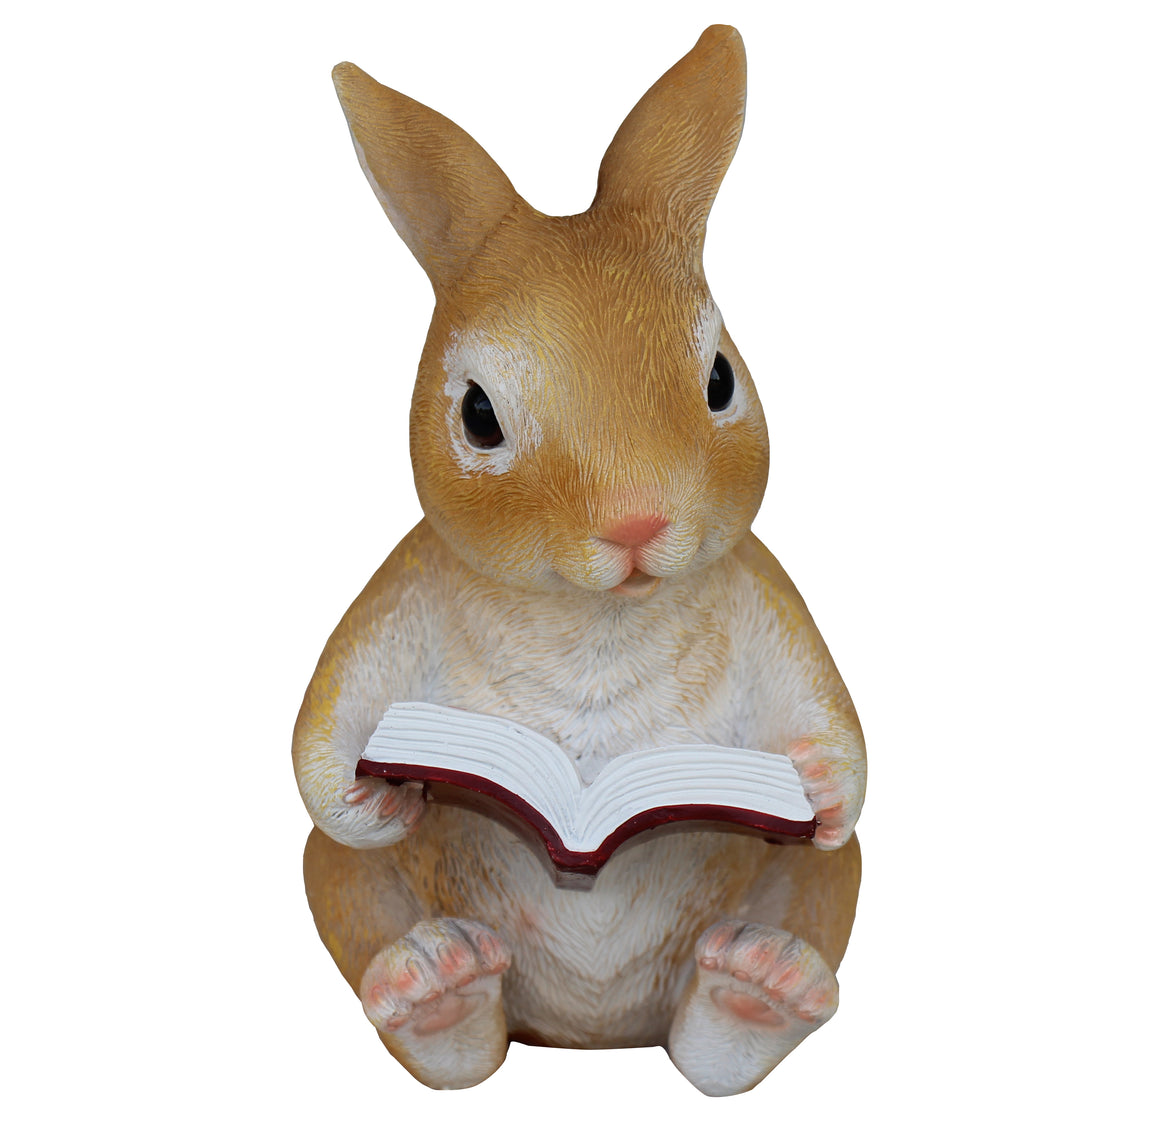 Rabbit Reading Book Figurine, Terrace Miniature Statue, Cute Bunny Ornament, Outdoor Decor, Garden and Lawn Statue. DM424A